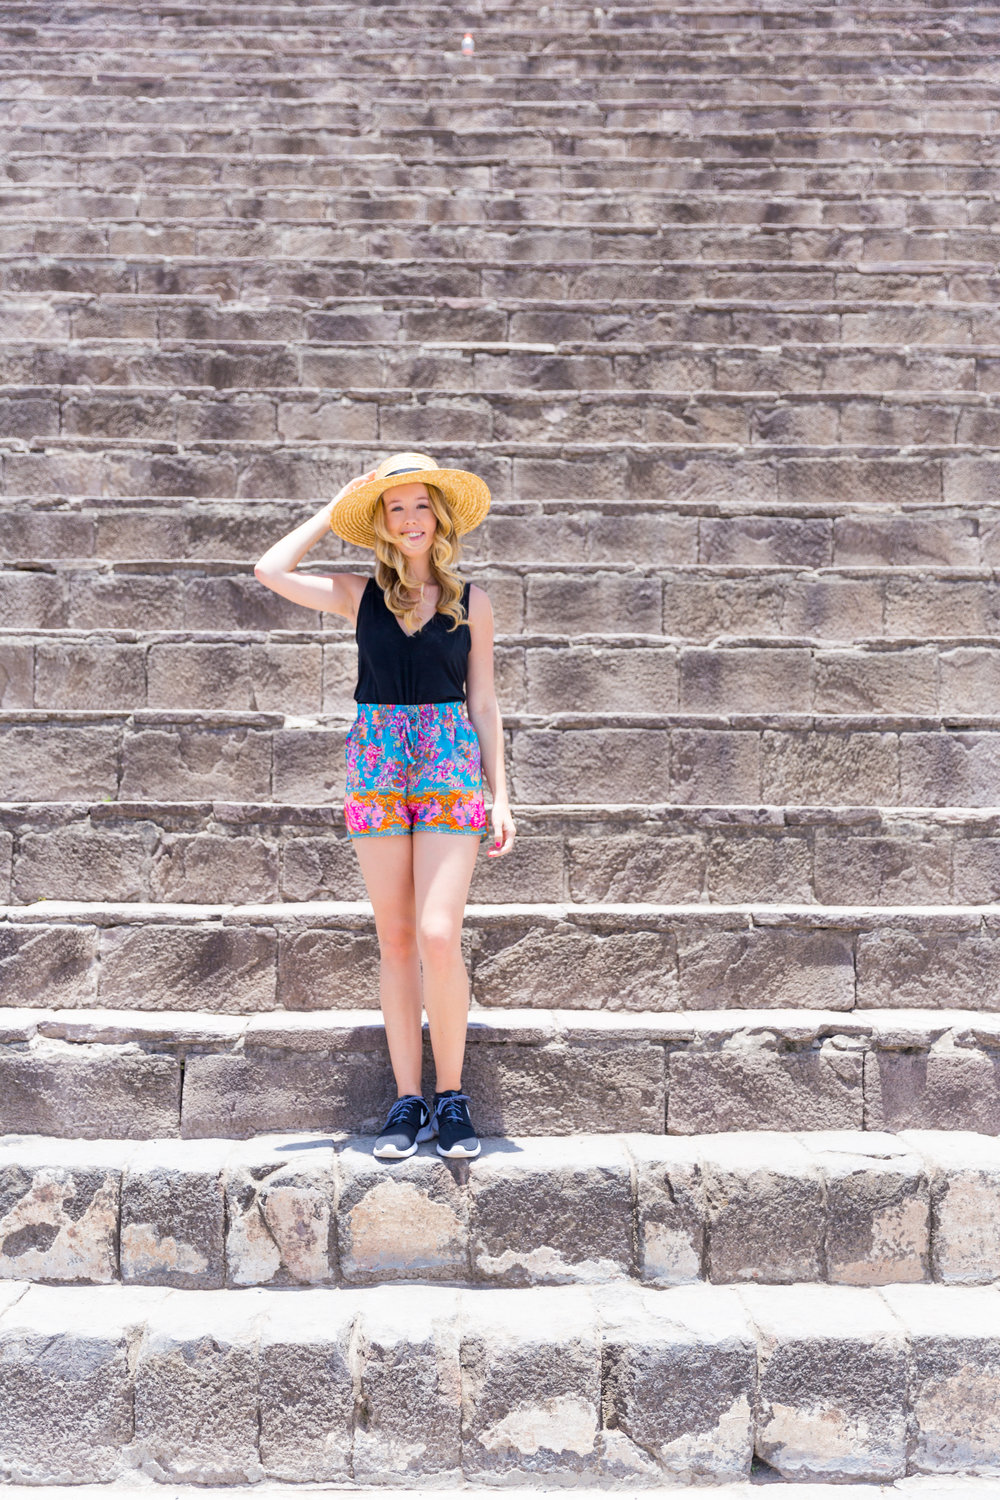 Mexico City Teotihuacan Pyramids Pattern Shorts Casual Summer Outfit.jpg